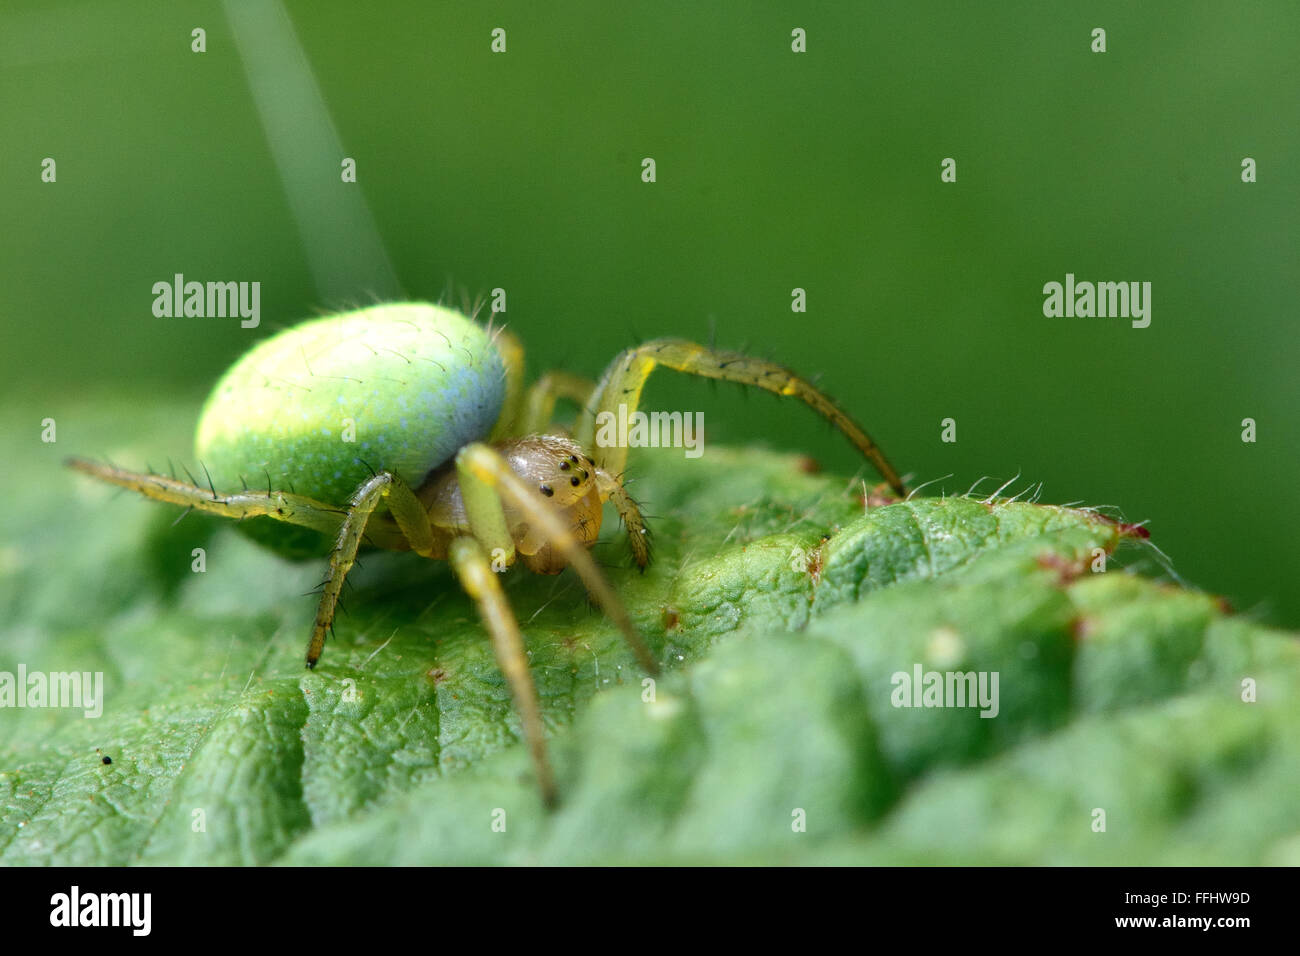 Green orb-weaver (Araniella sp.). A female spider in the family Araneidae, with distinctive green abdomen - Stock Image